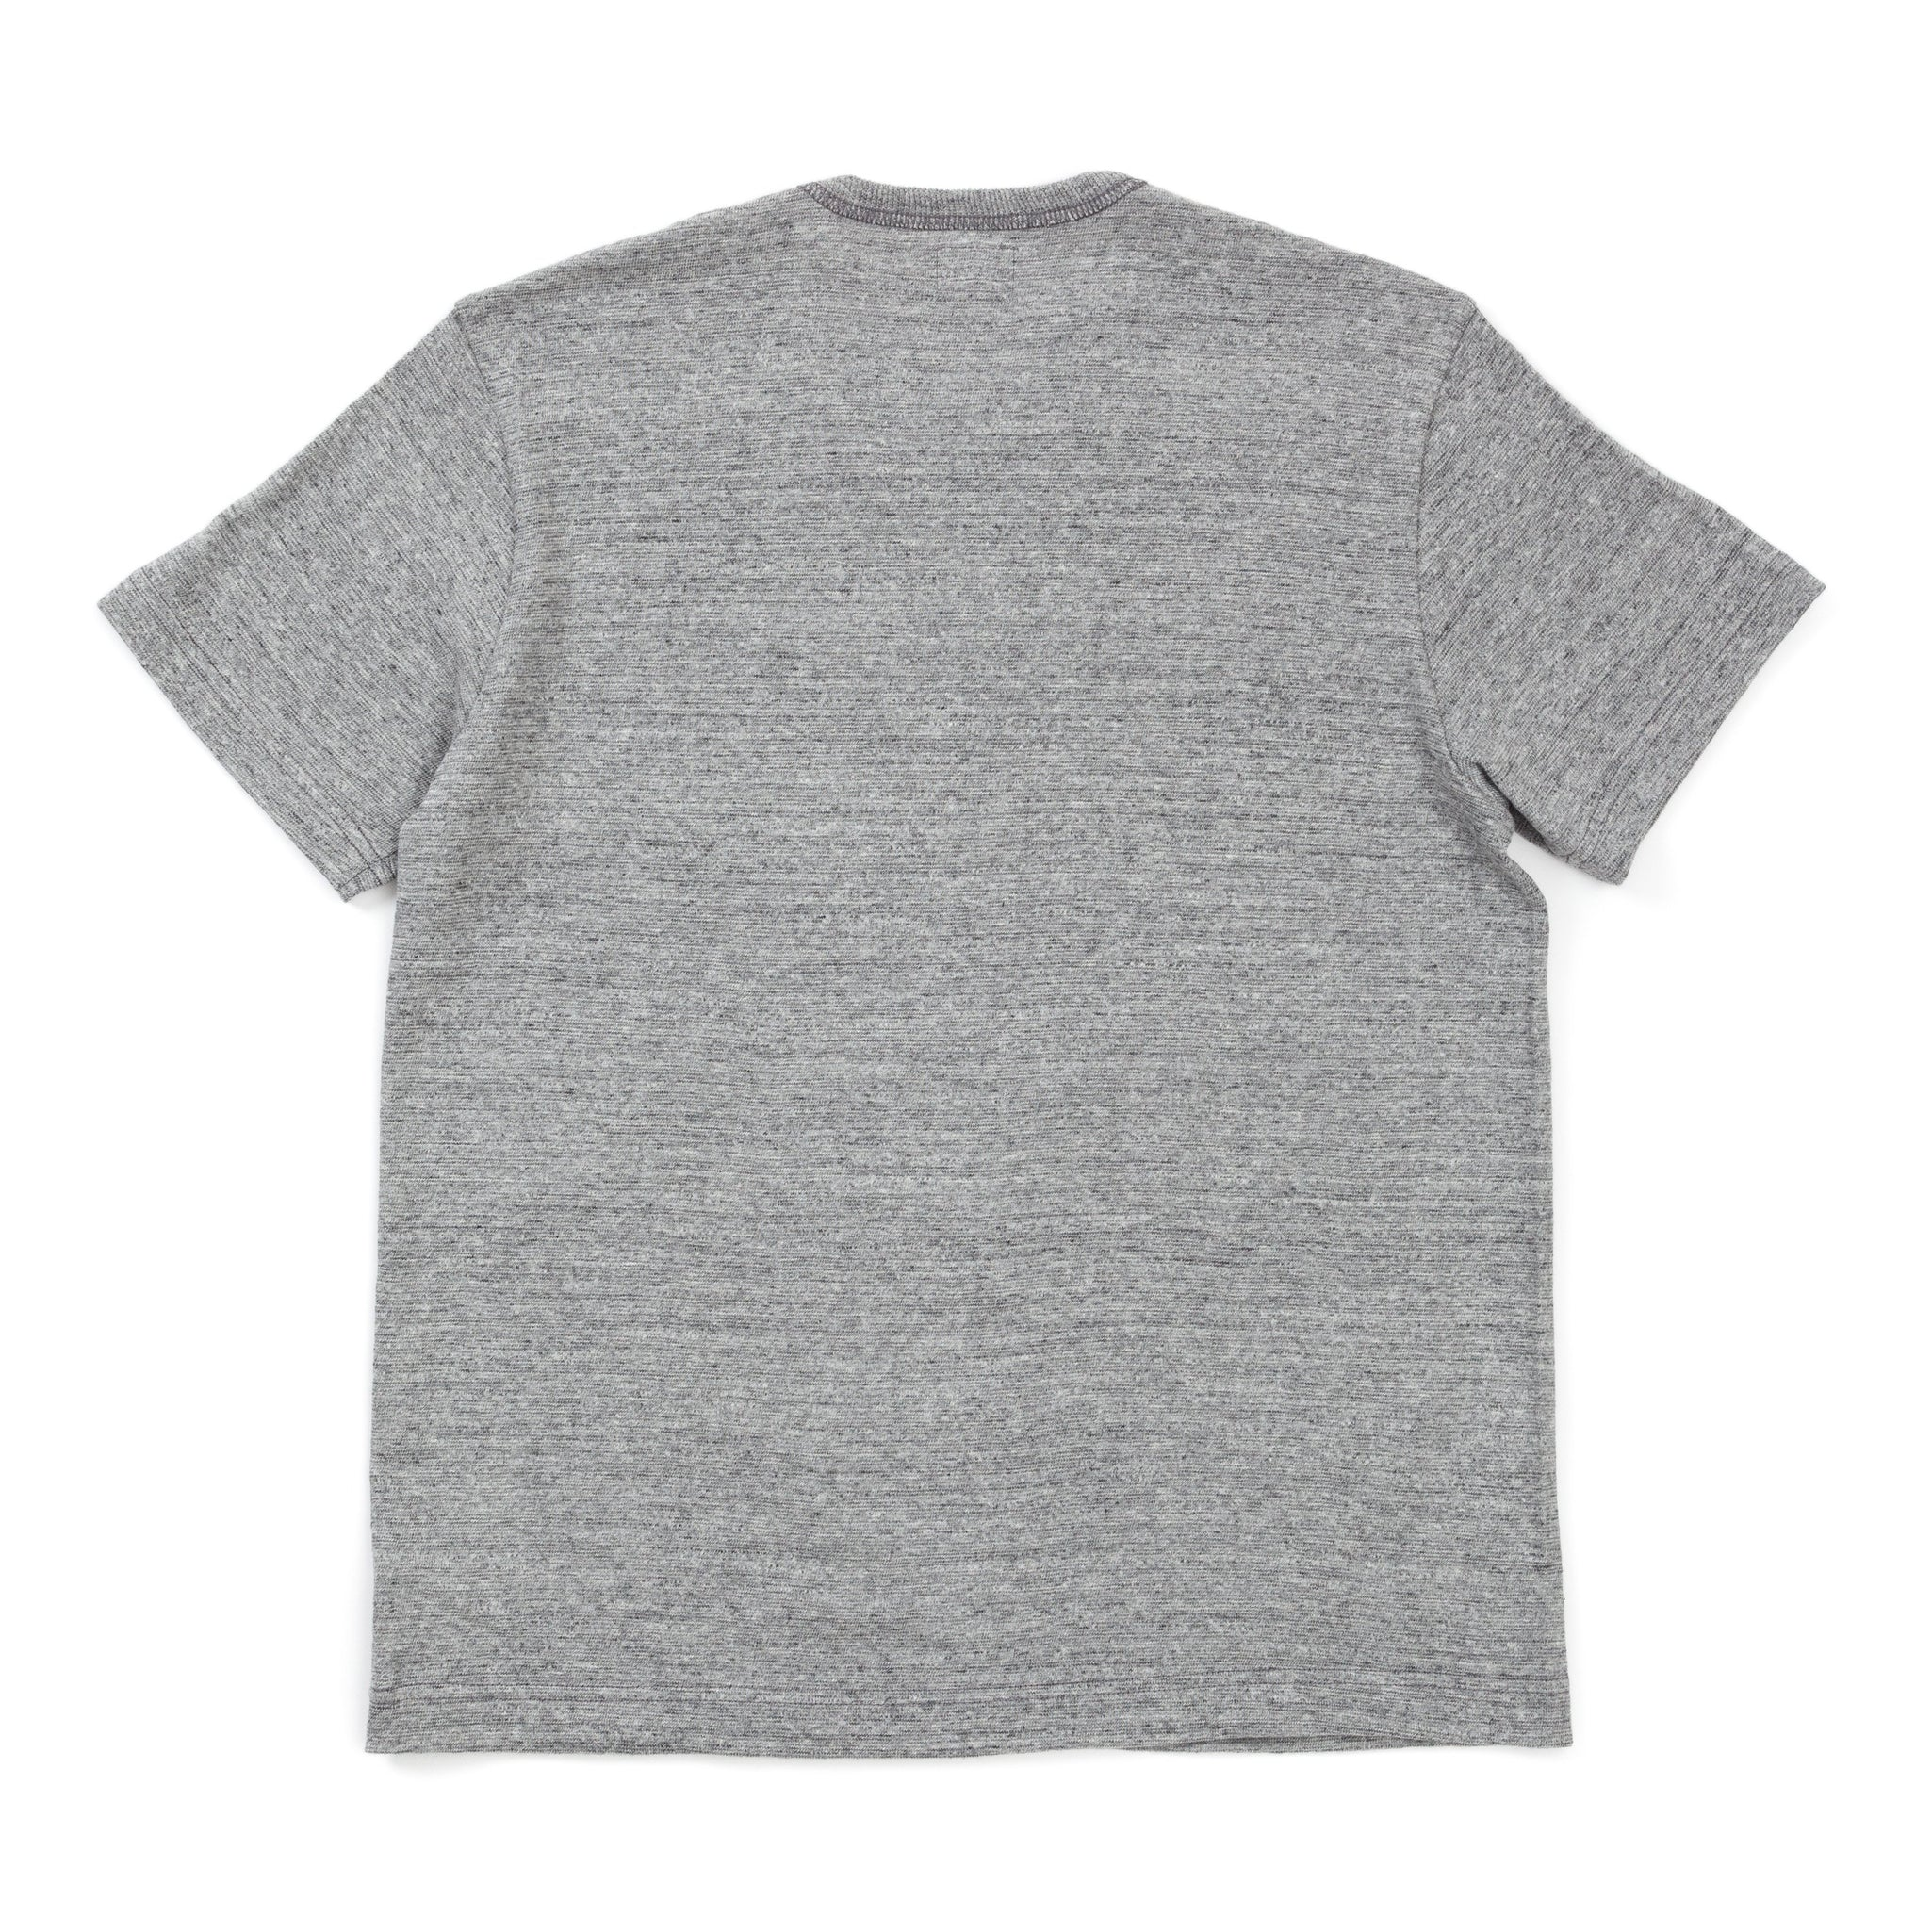 Athletic T-Shirt Loop wheel